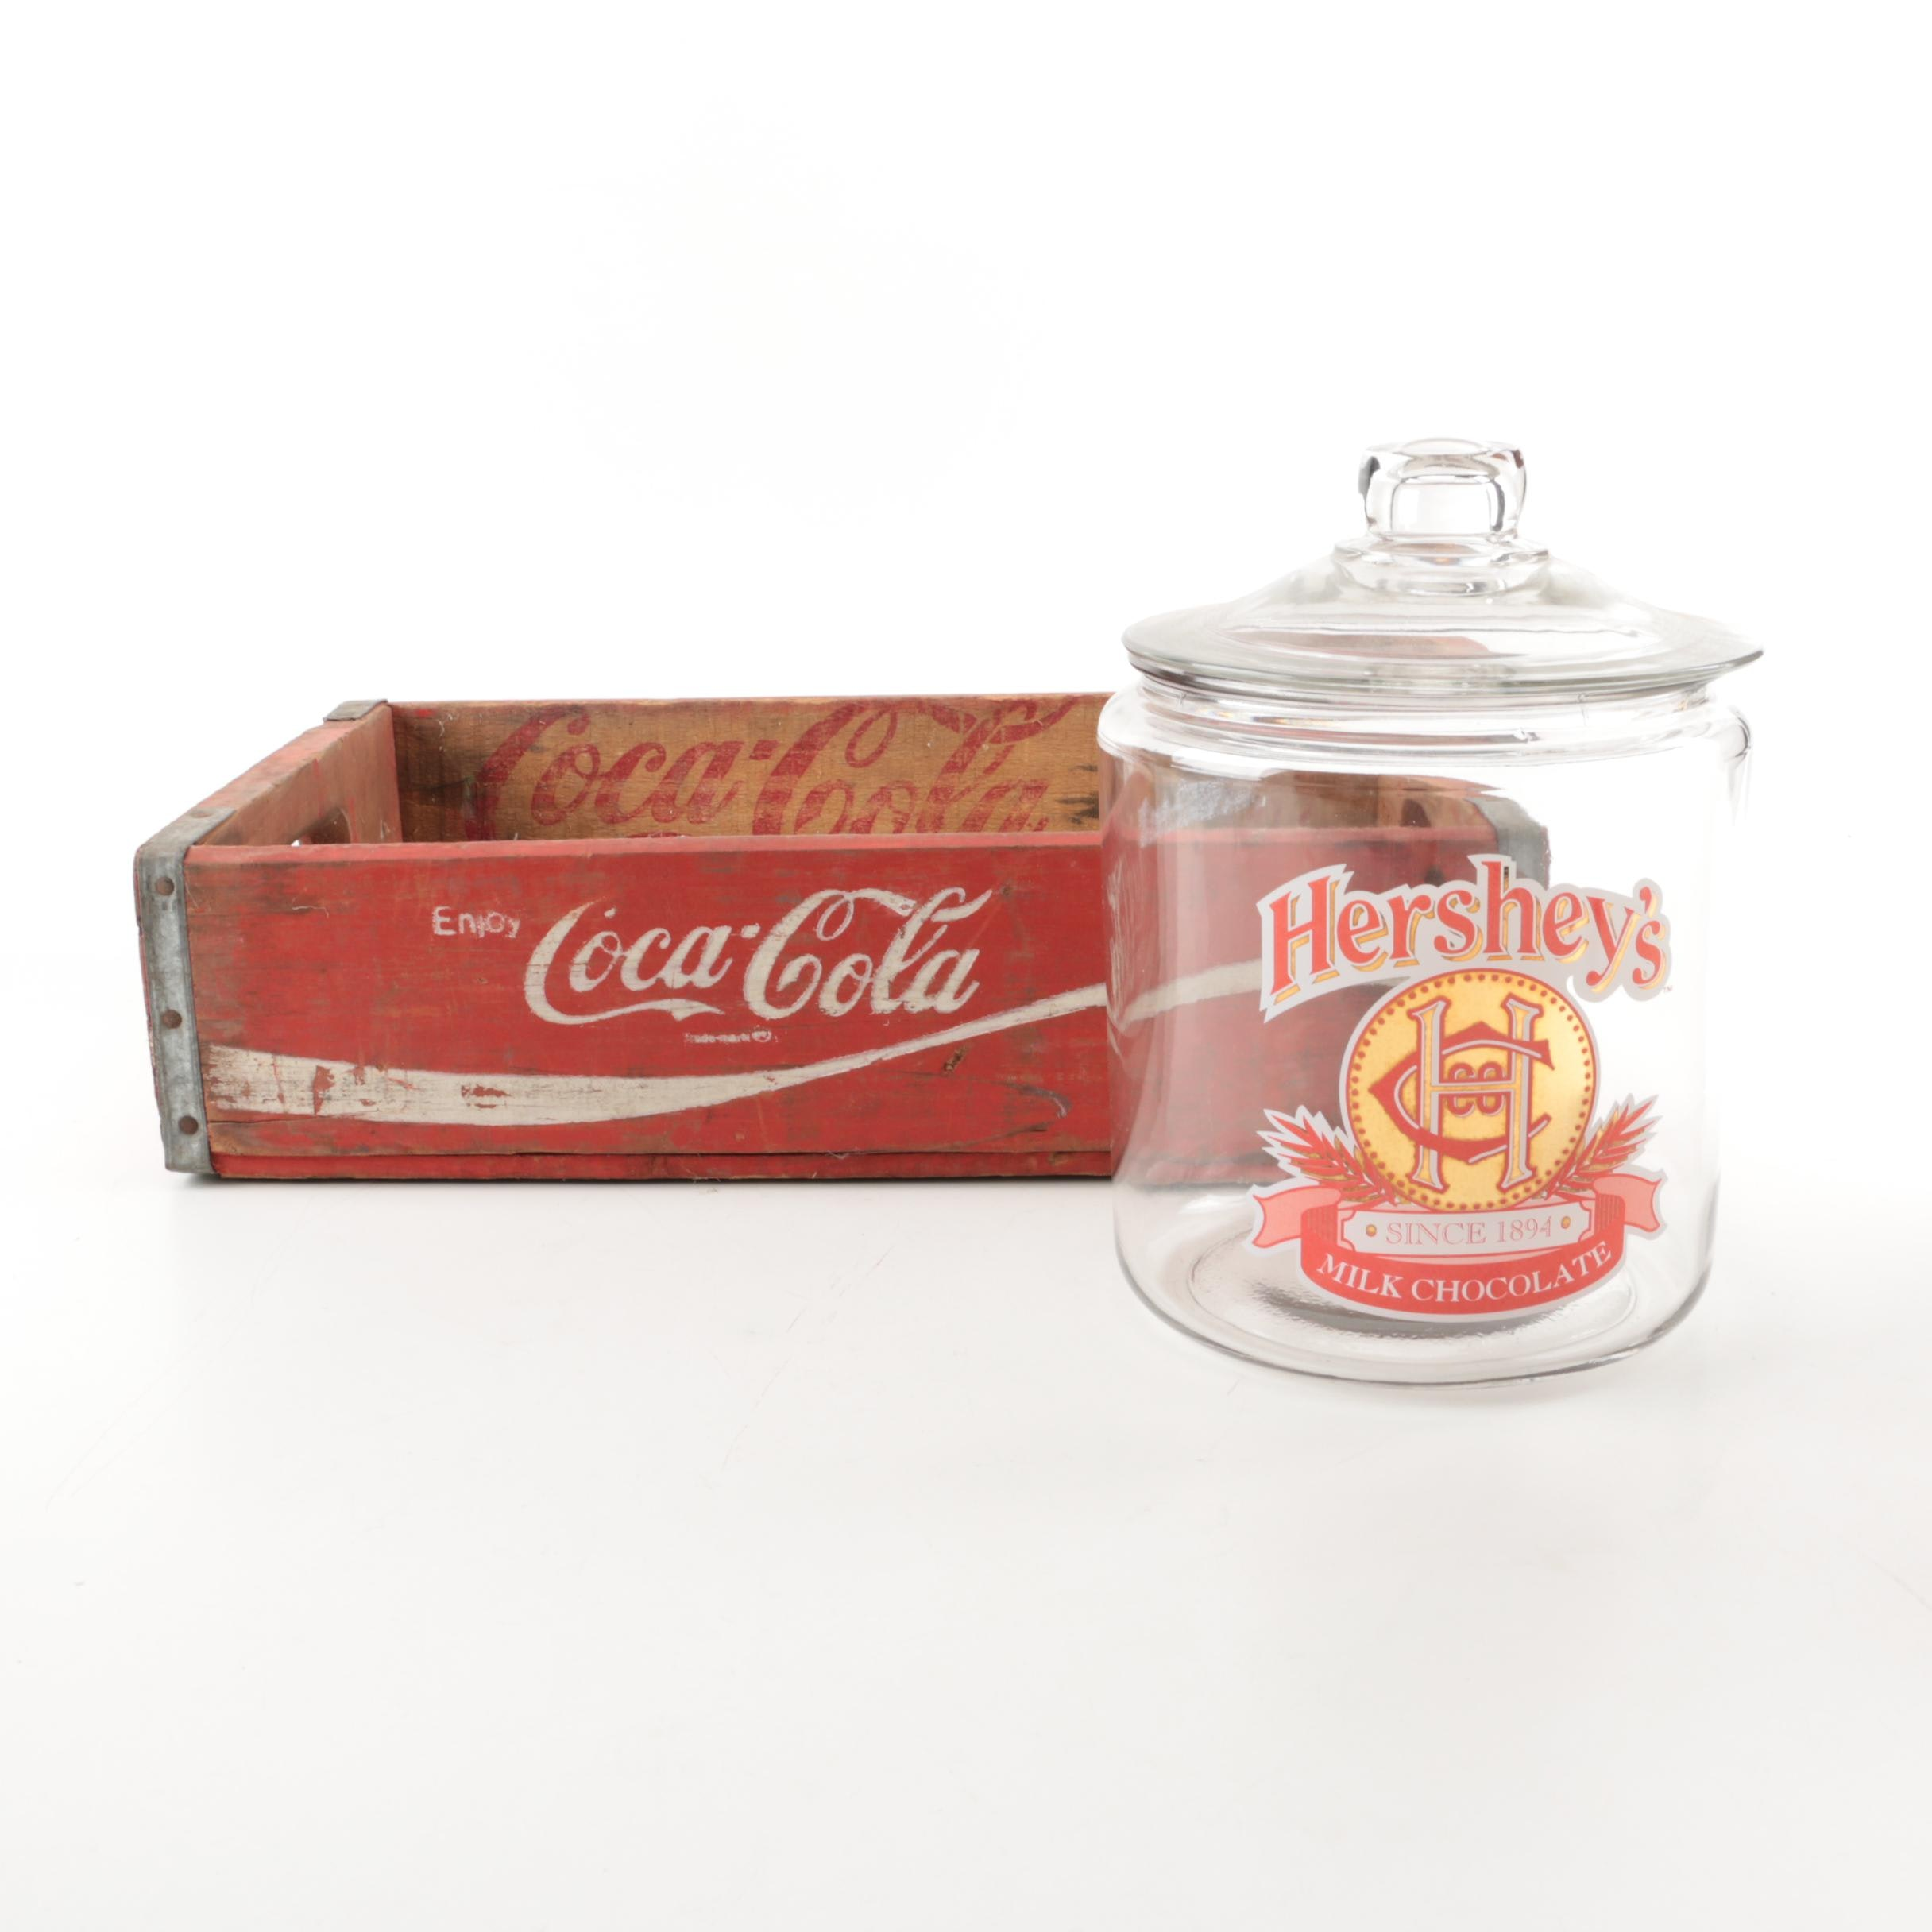 Vintage Coca-Cola and Hershey's Chocolate Containers